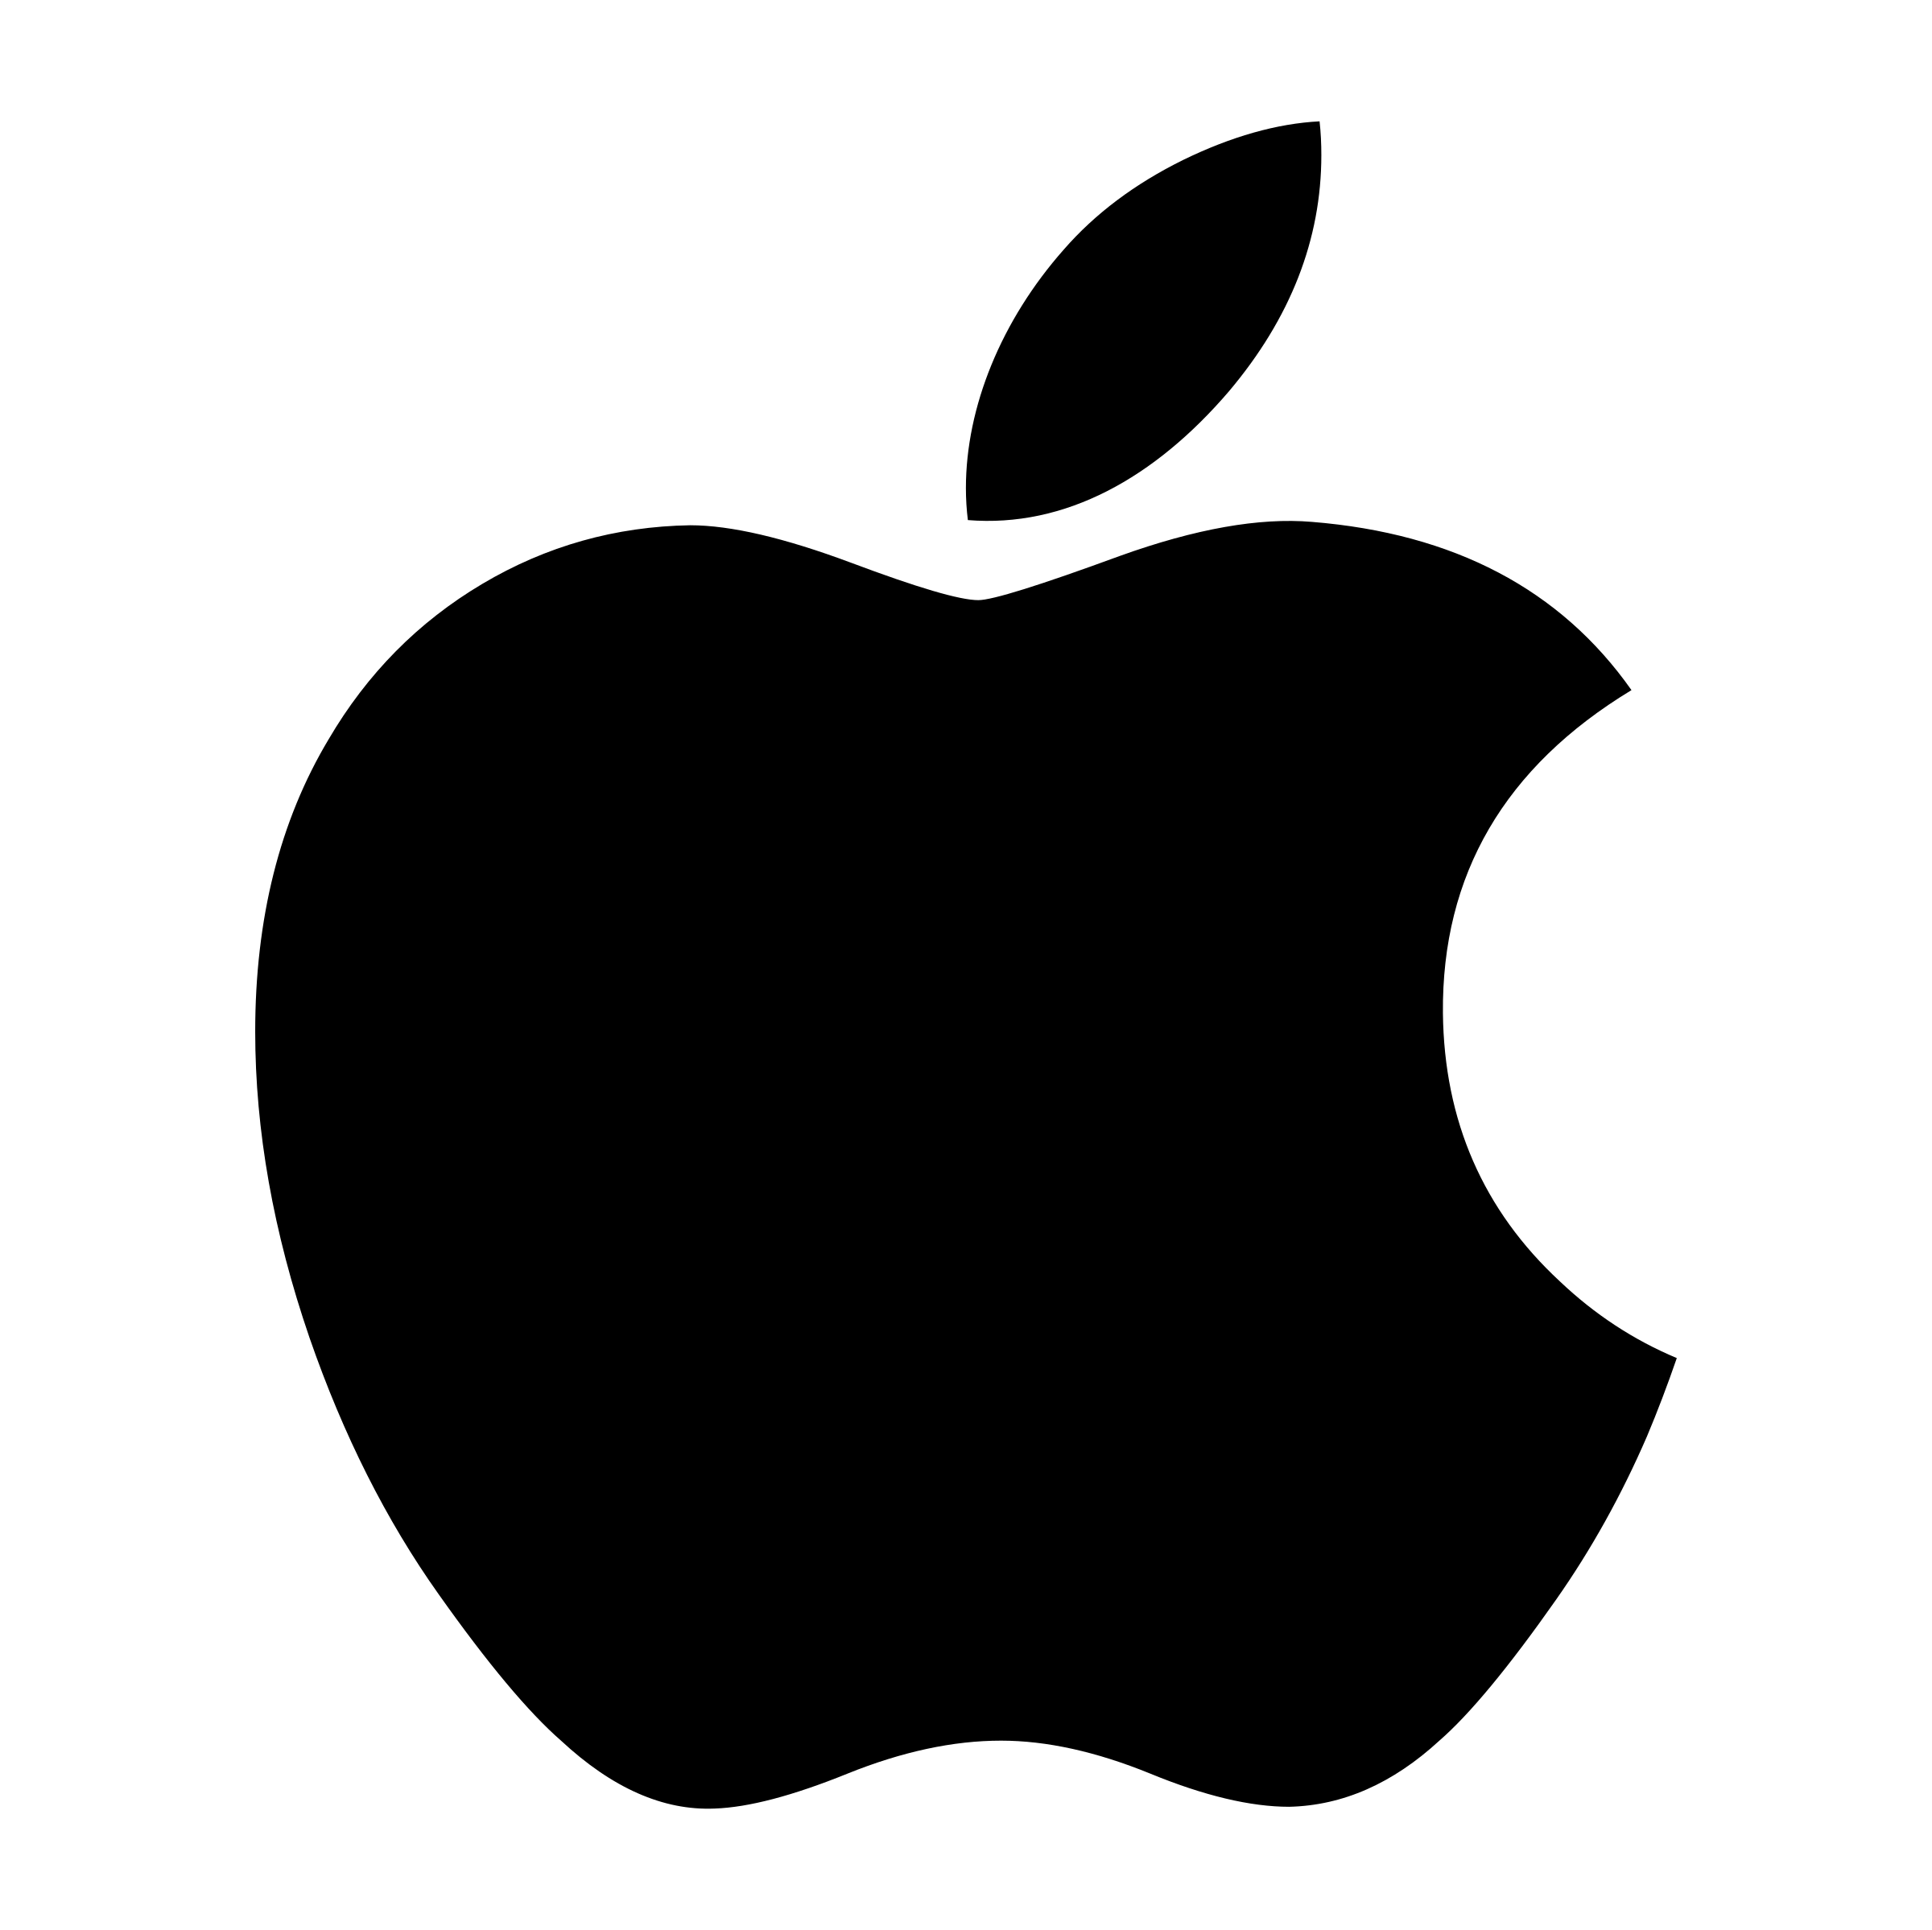 Clipart apple png white clip royalty free Apple Logo PNG Transparent & SVG Vector - Freebie Supply clip royalty free